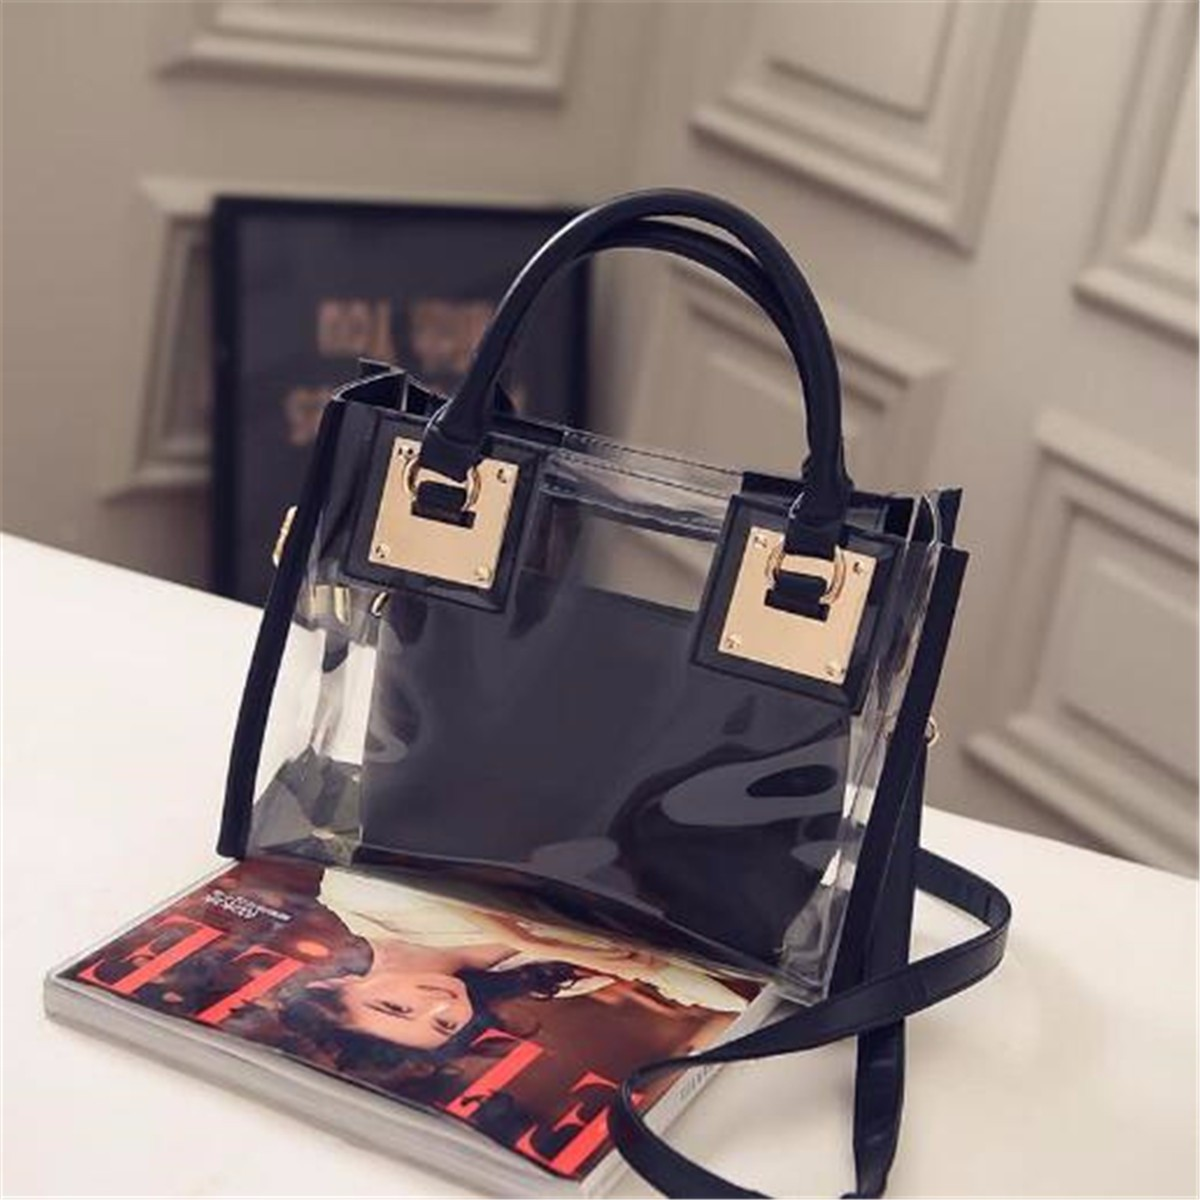 535987ee533b Outdoor Summer Beach Handbag Clear Transparent Shoulder Bag Jelly Candy  Women Messenger Tote Bag